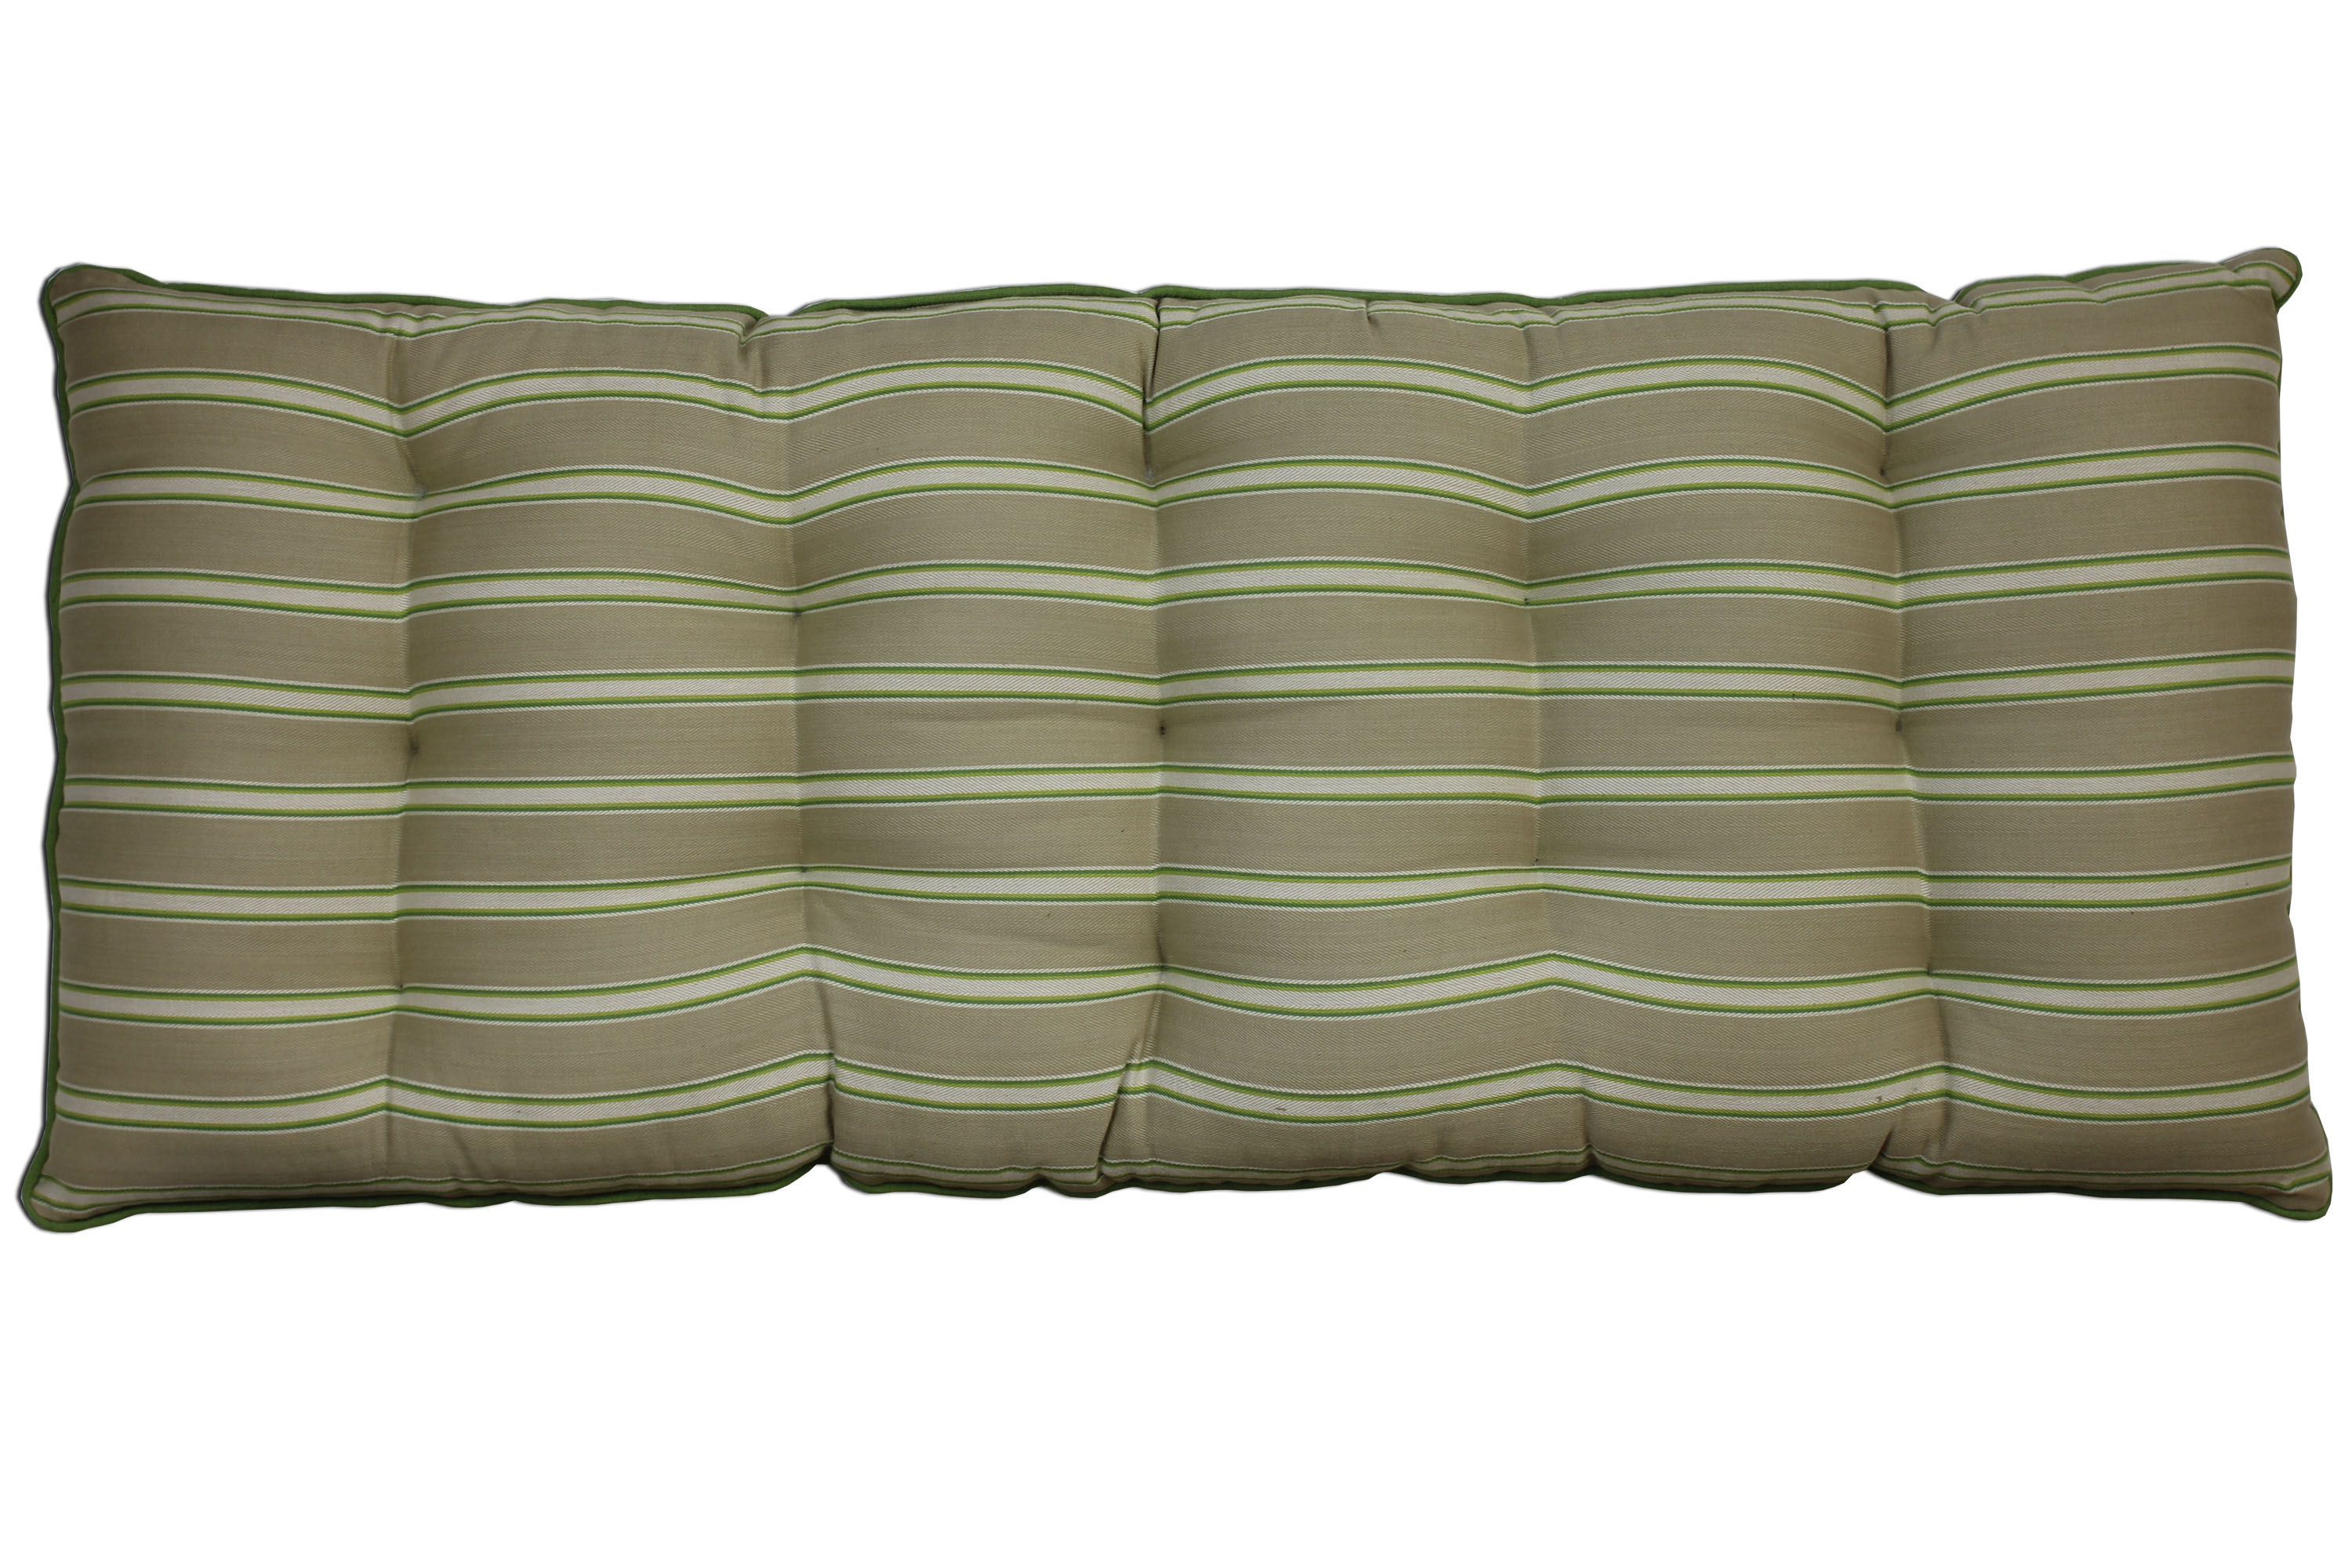 Beige Striped Bench Cushions | Long Seat Cushions Beige and Green Stripes